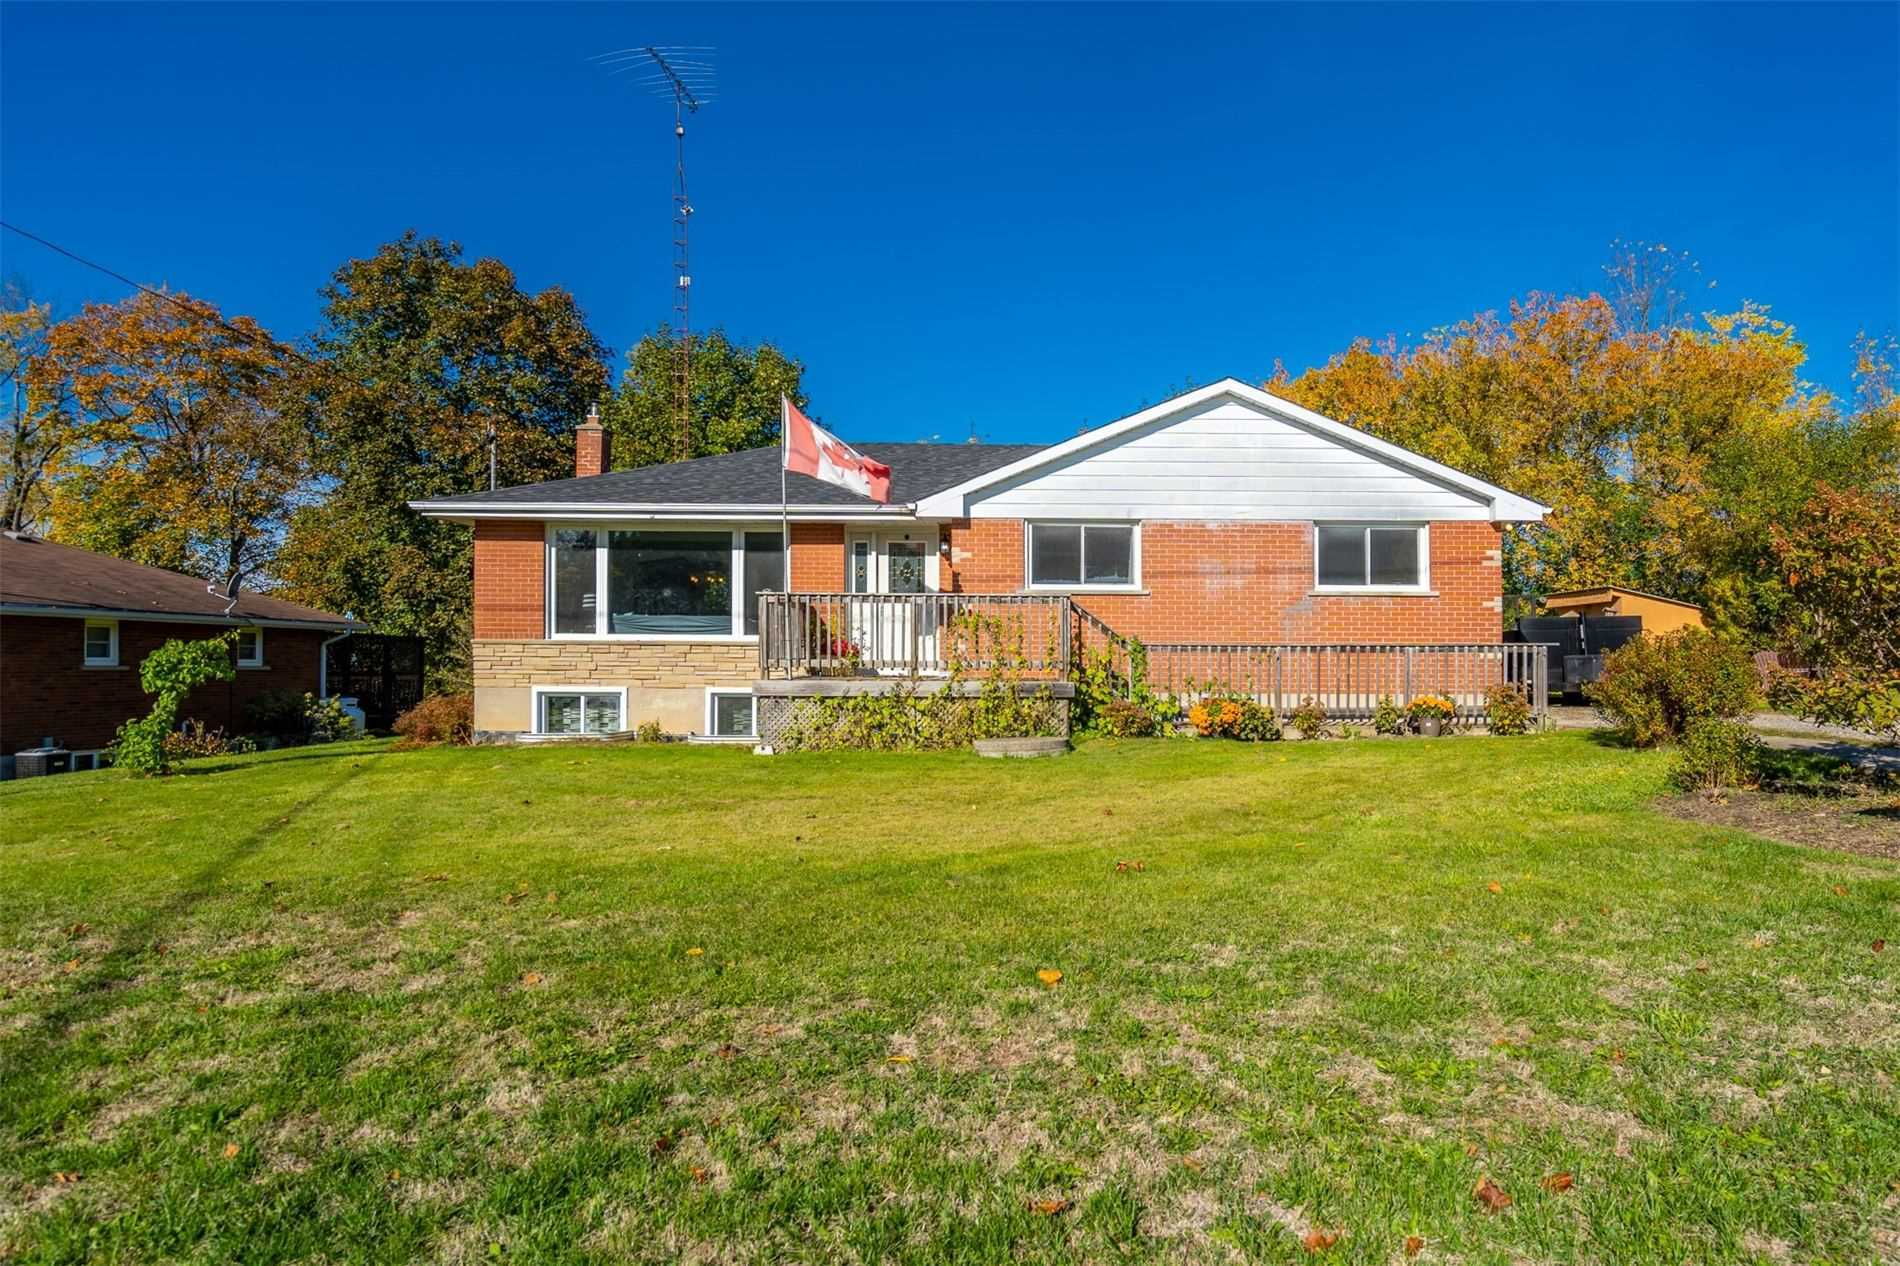 For Sale: 46 Jerseyville Road, Brant, ON | 3 Bed, 2 Bath House for $424900.00. See 26 photos!